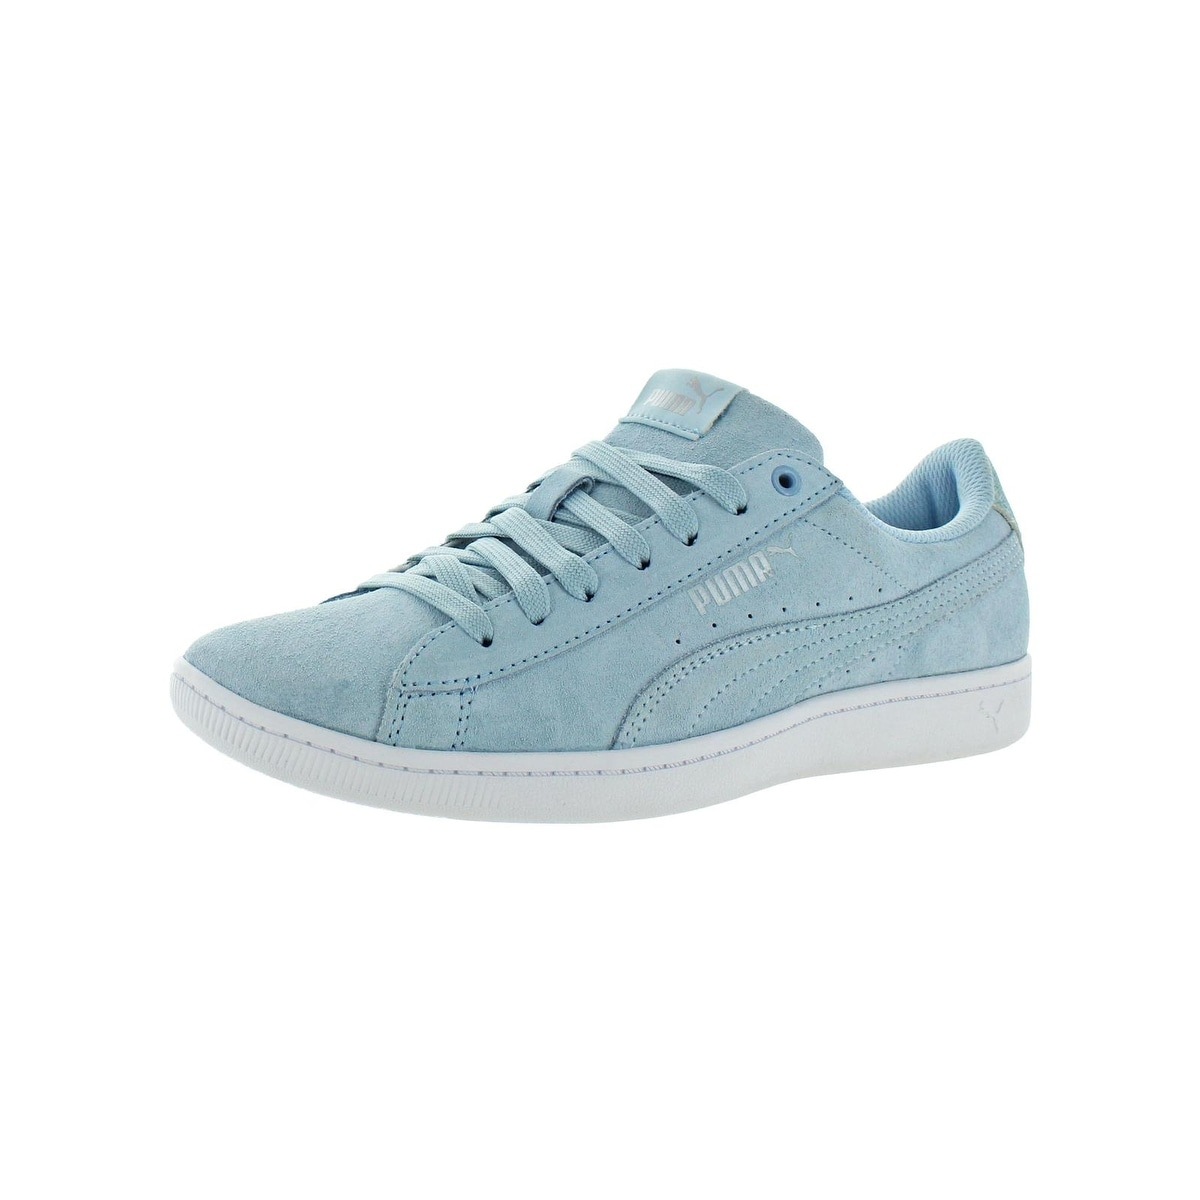 Buy Puma Women's Sneakers Online at Overstock | Our Best